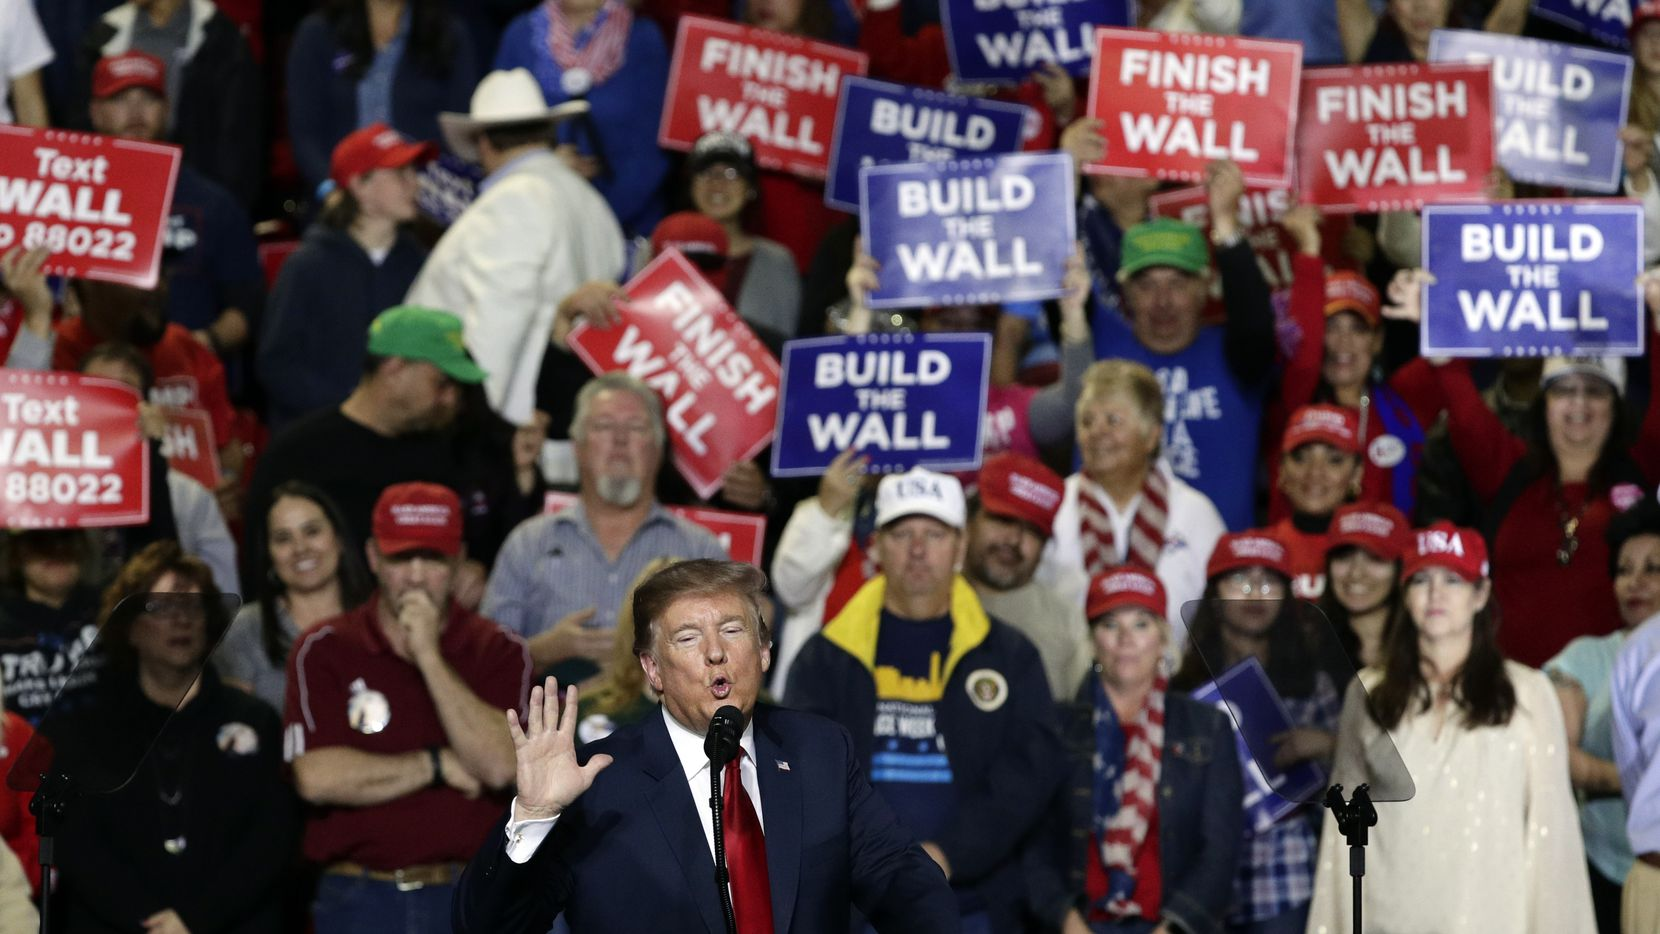 President Donald Trump speaks during a rally at the El Paso County Coliseum, Monday, Feb. 11, 2019, in El Paso, Texas.